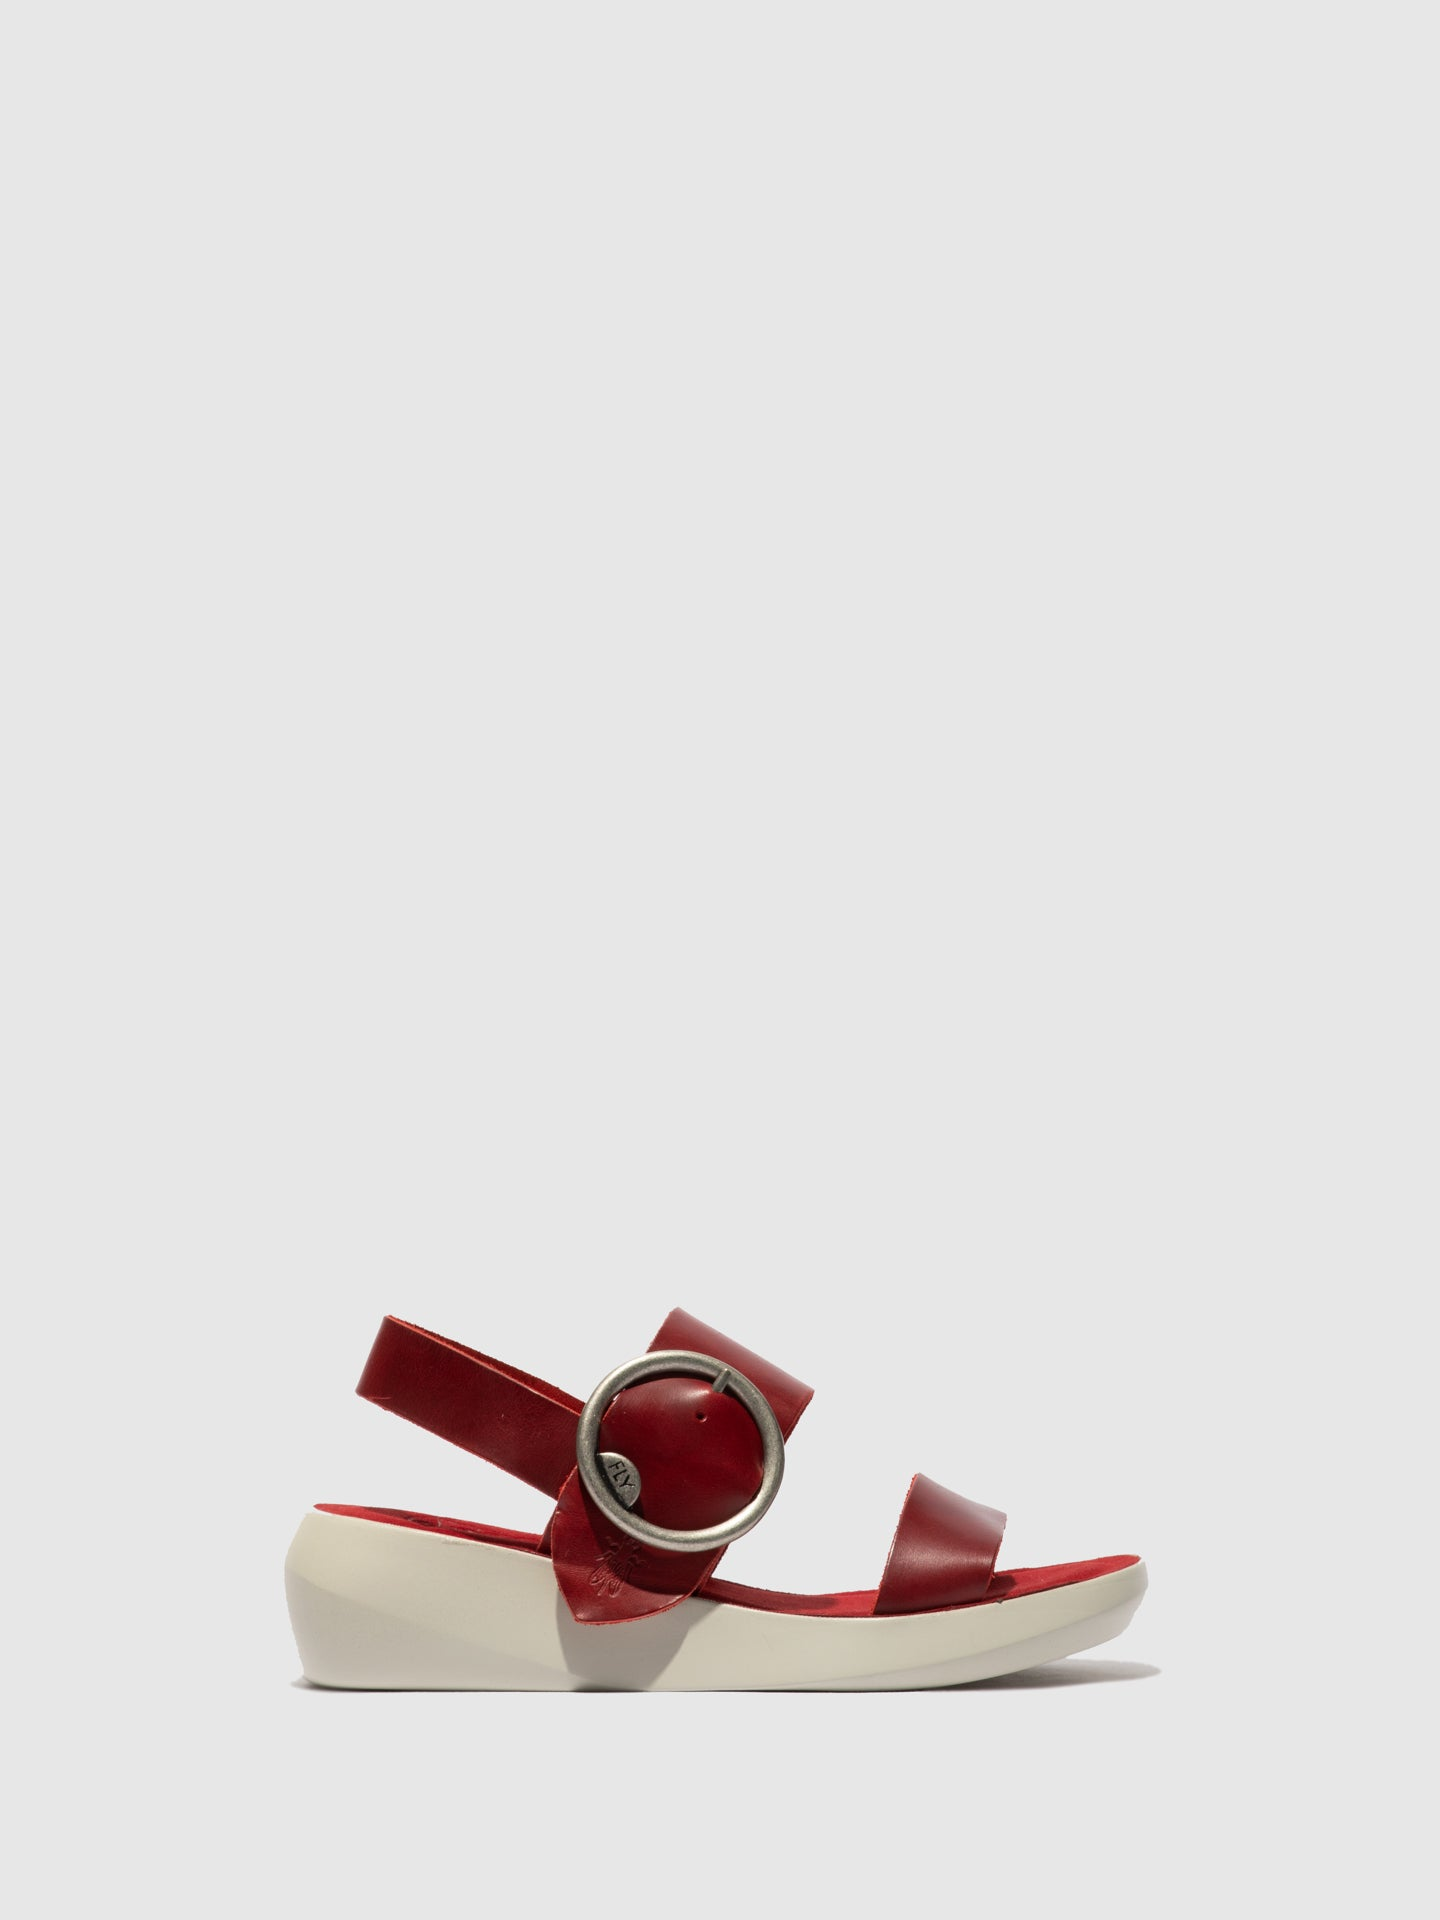 Fly London Buckle Sandals BANI739FLY BRIDLE RED